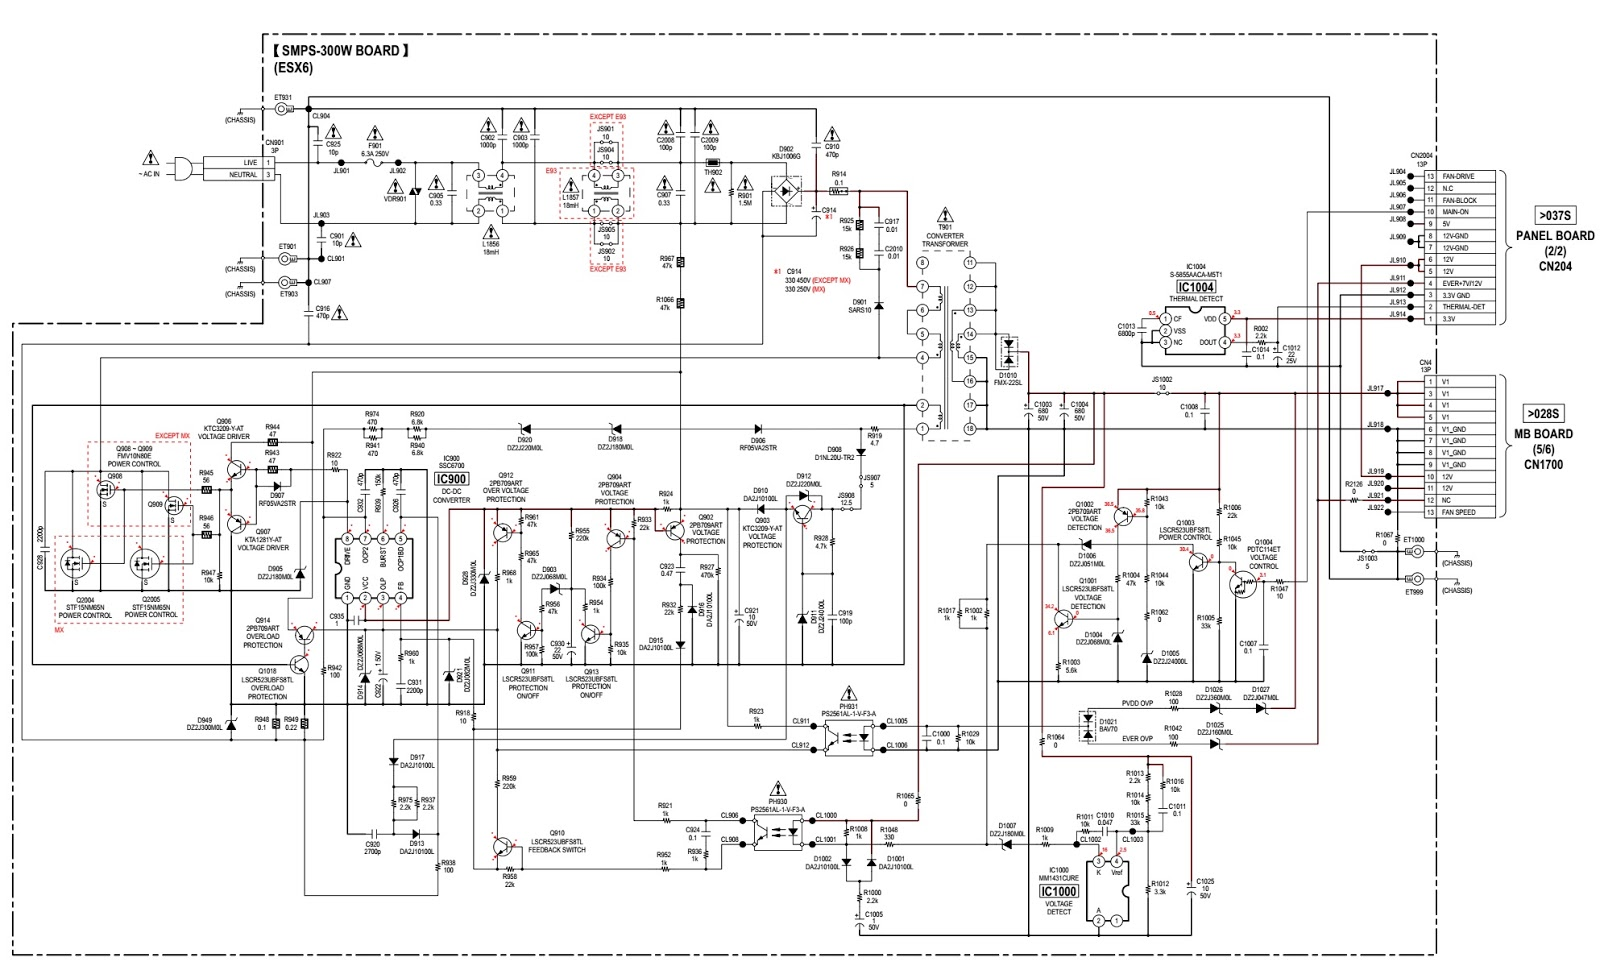 Sony Hcd Esx6 Esx8 Esx9 Compact Disc Receiver Smps And Front 600w Amp Wiring Diagram 300w Schematic Circuit